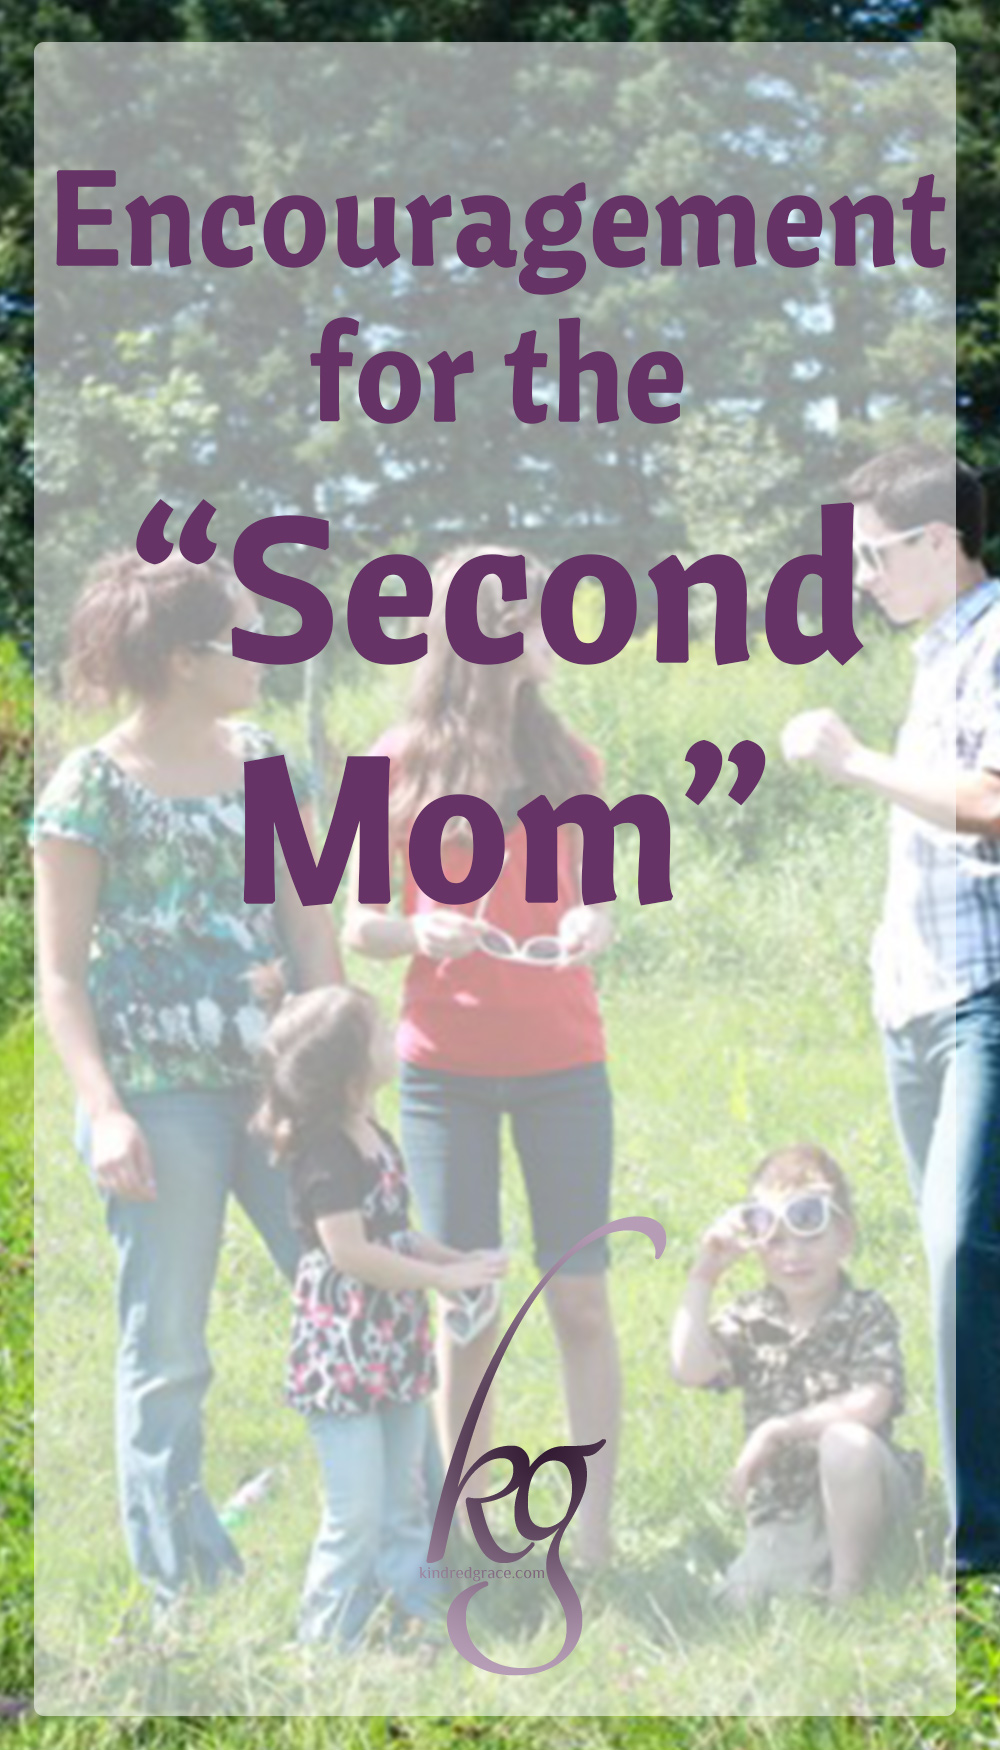 You know you're the second mom in a big family when…